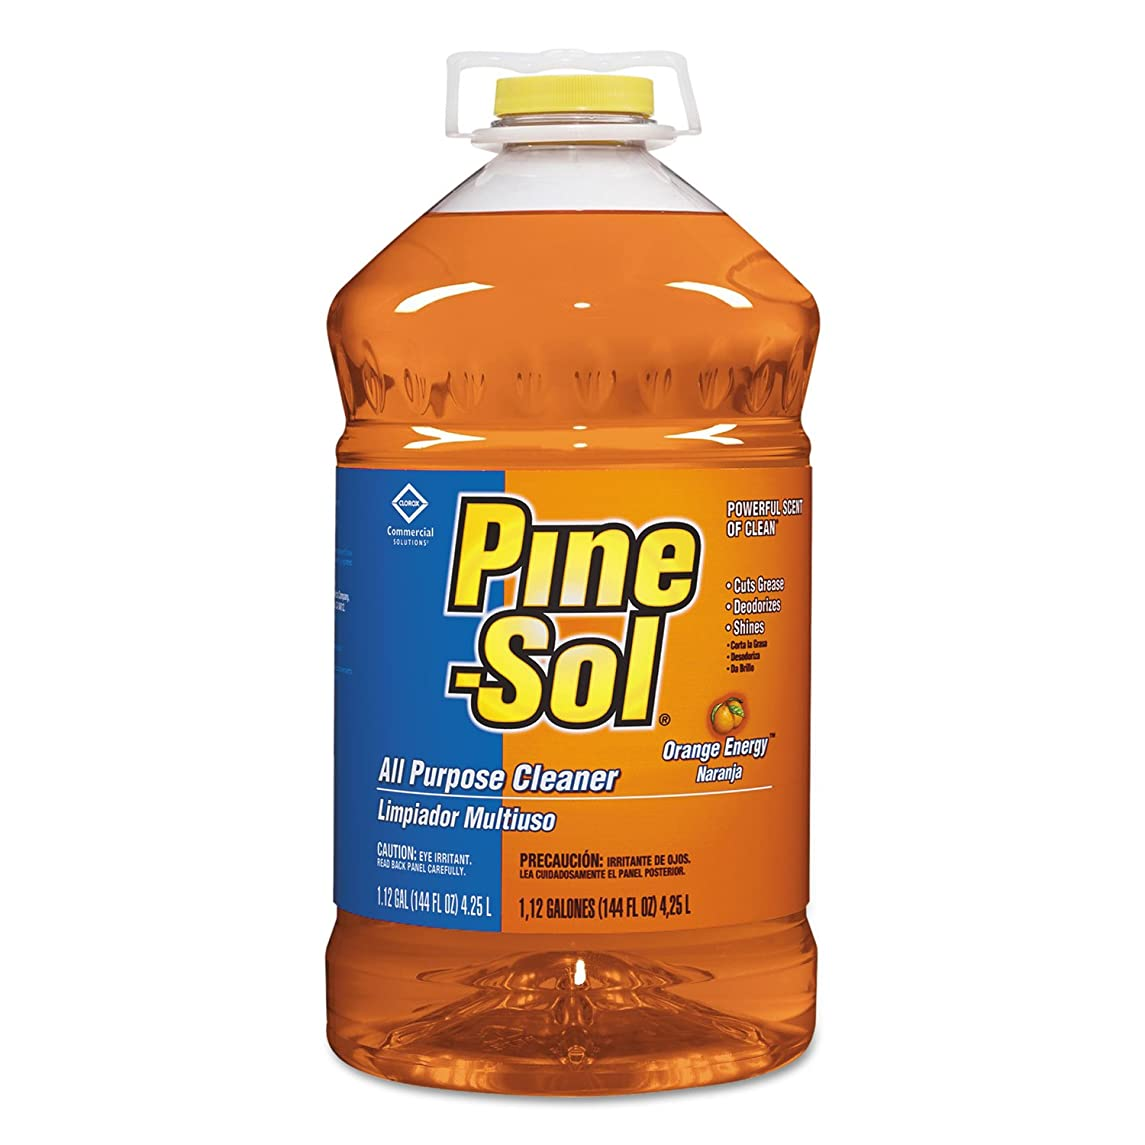 Pine-Sol All-Purpose Cleaner, Orange Scent, 144 oz. Bottle, 3/Carton